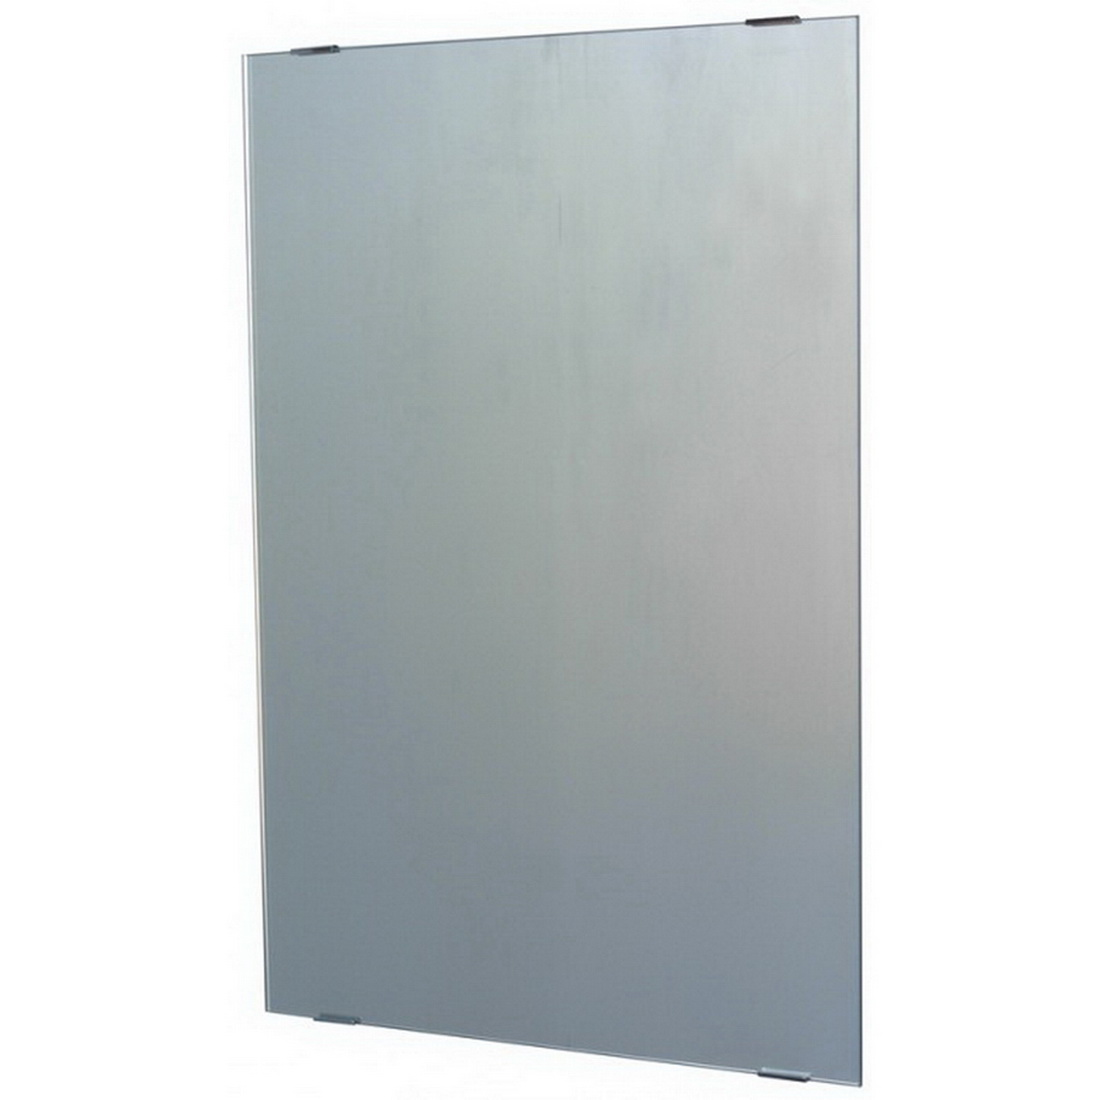 Mirrox Polished Edge Mirror with Clips 900 x 900mm 3636PEMCLIPS